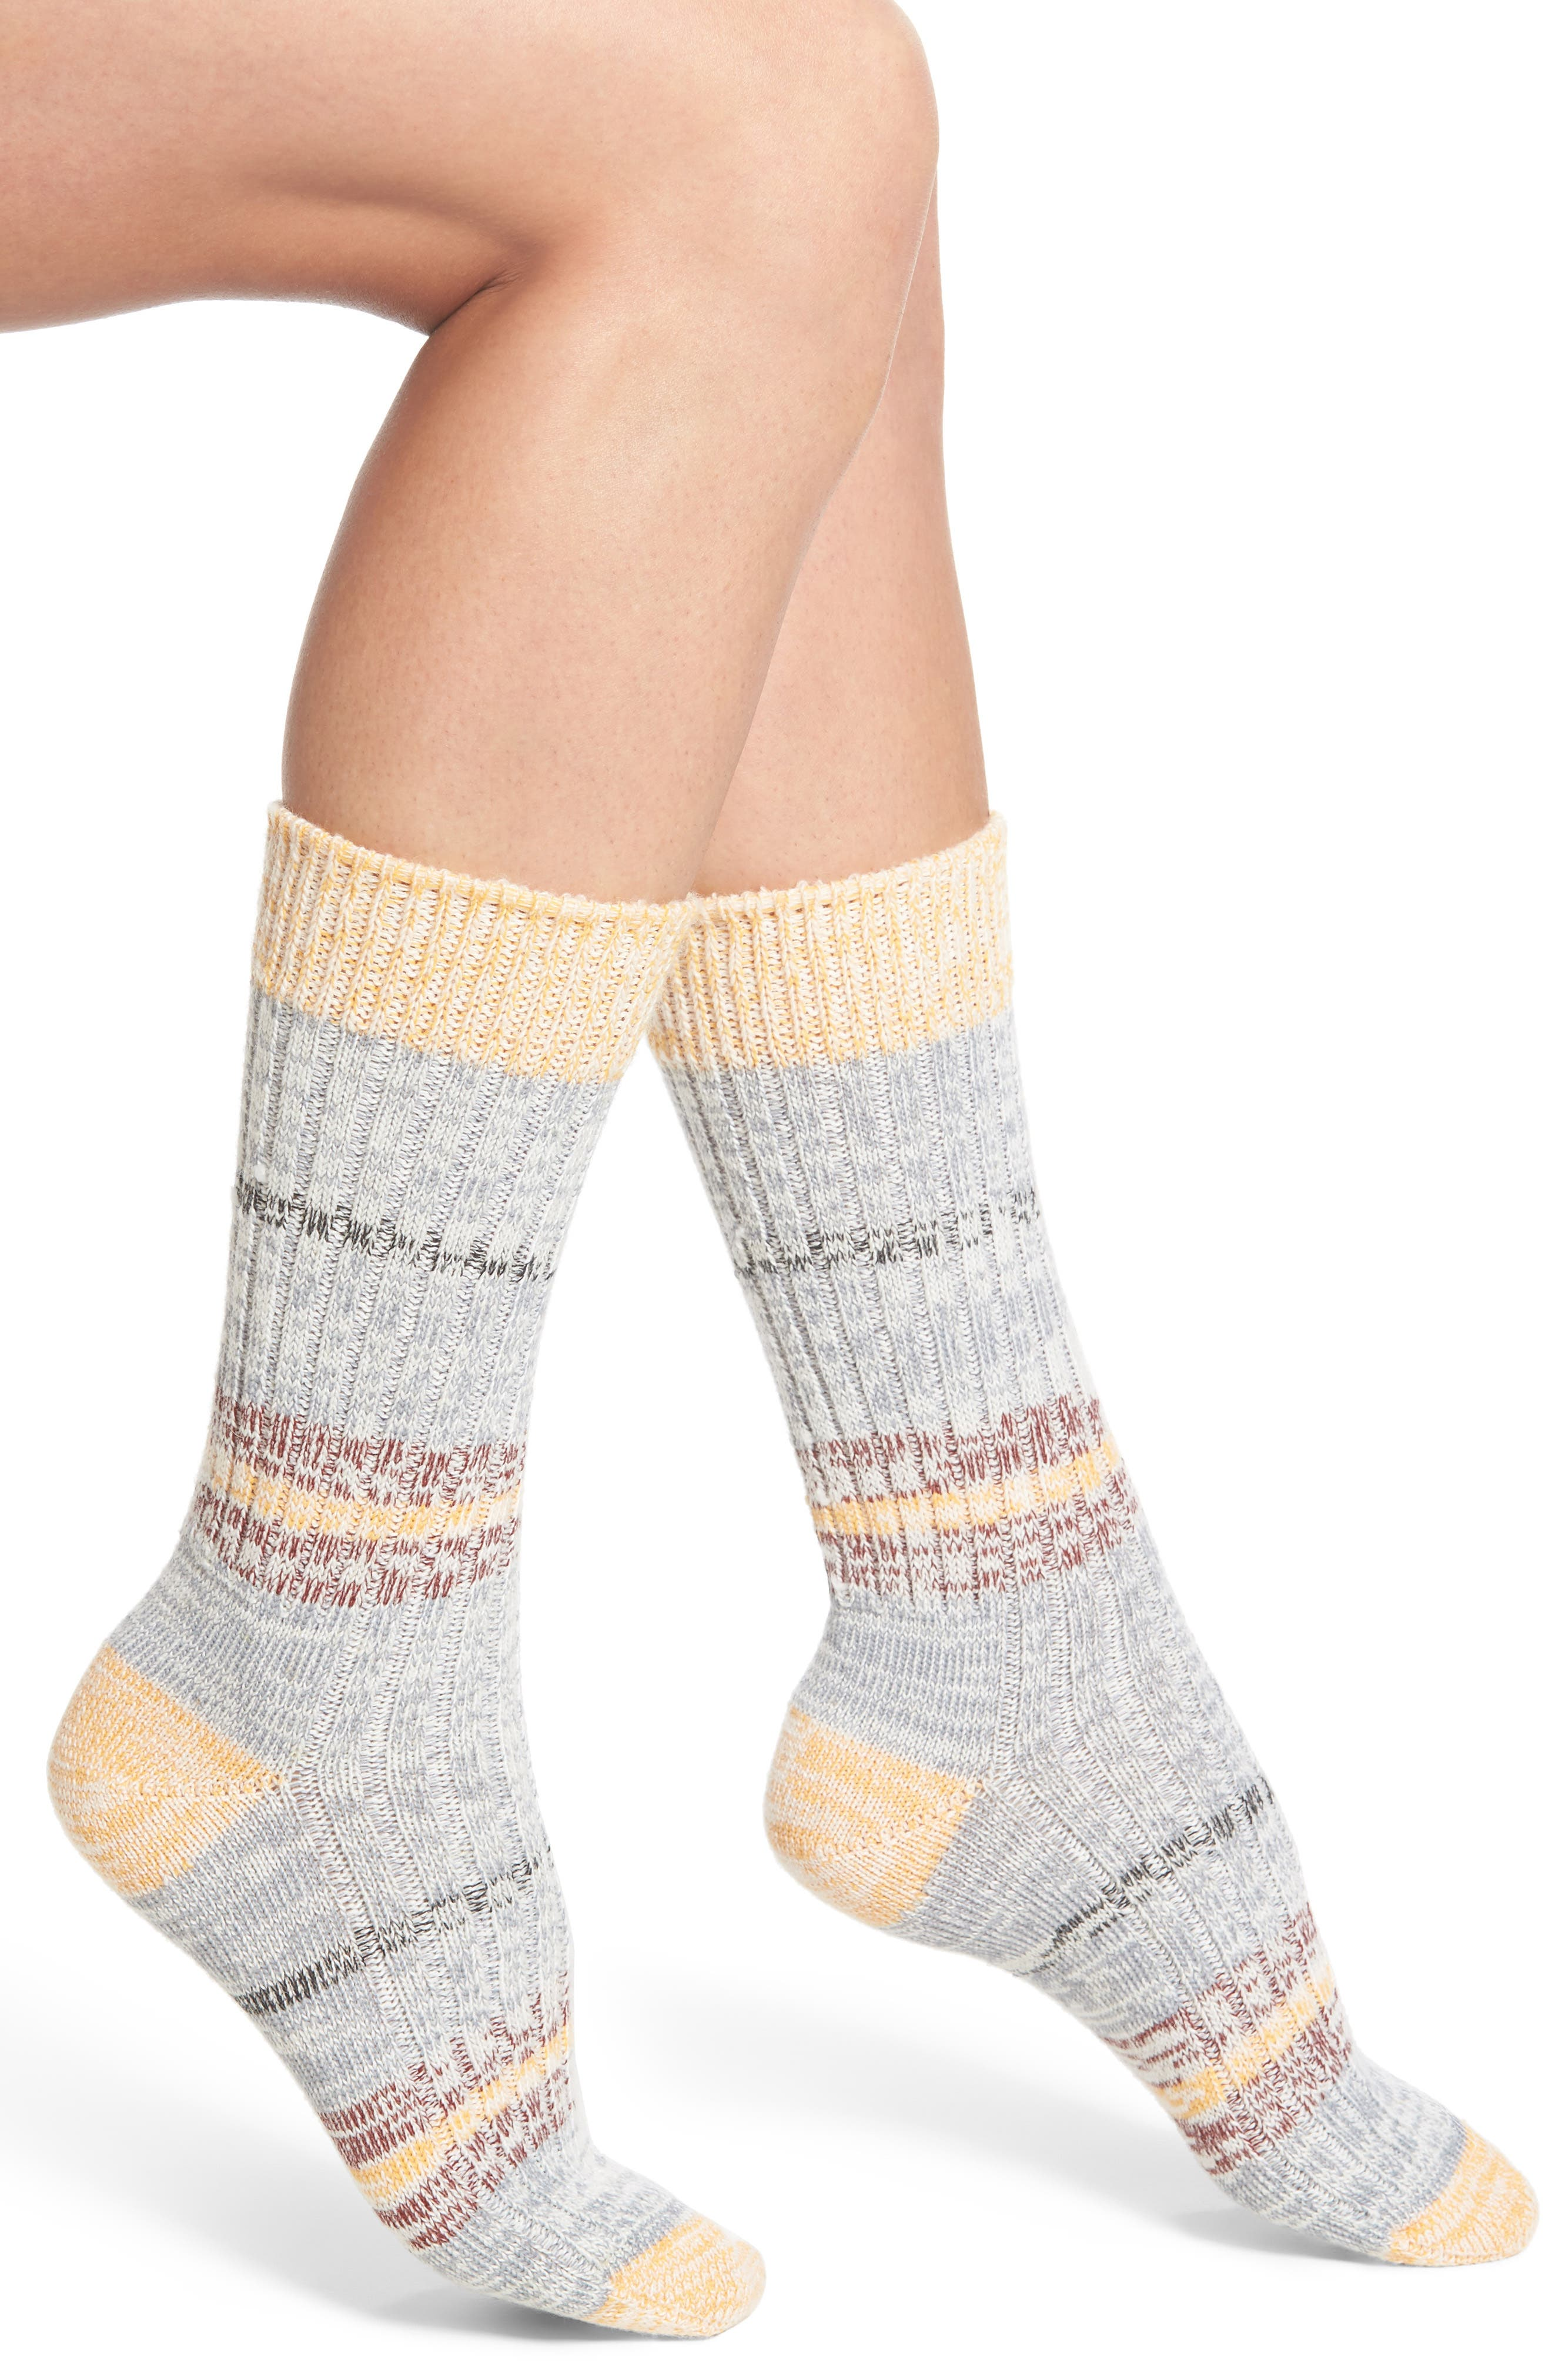 Mingle Crew Socks,                         Main,                         color, Yam